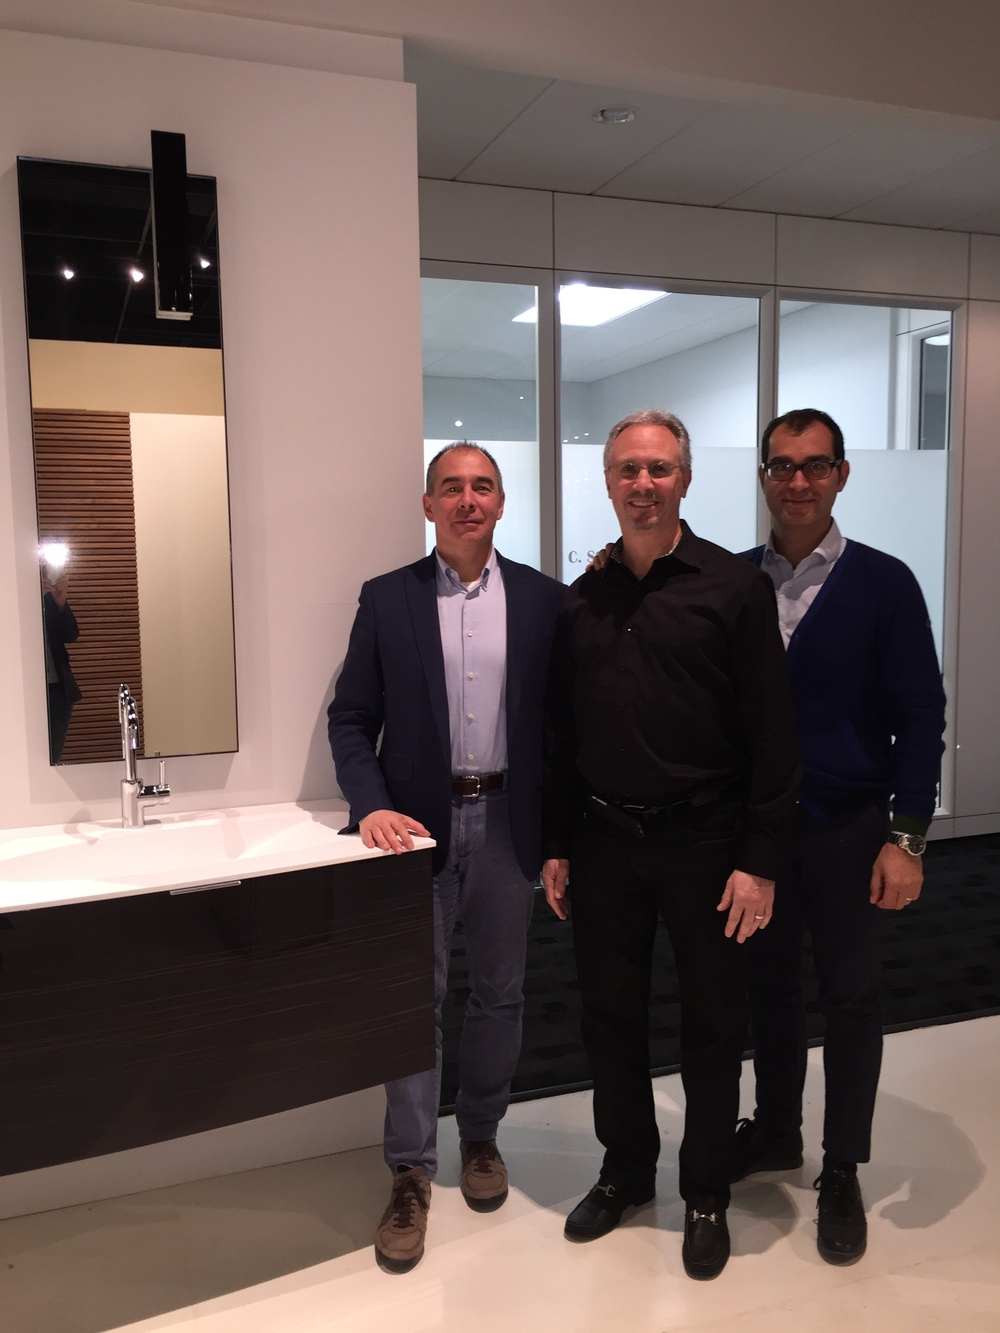 Left to right: Giulio Botteon, Export Manager, Cerasa, Rob Nusbaum, President and CEO, EuroAmerica Design, and Robert Riboldi, Owner/CEO, Cerasa.